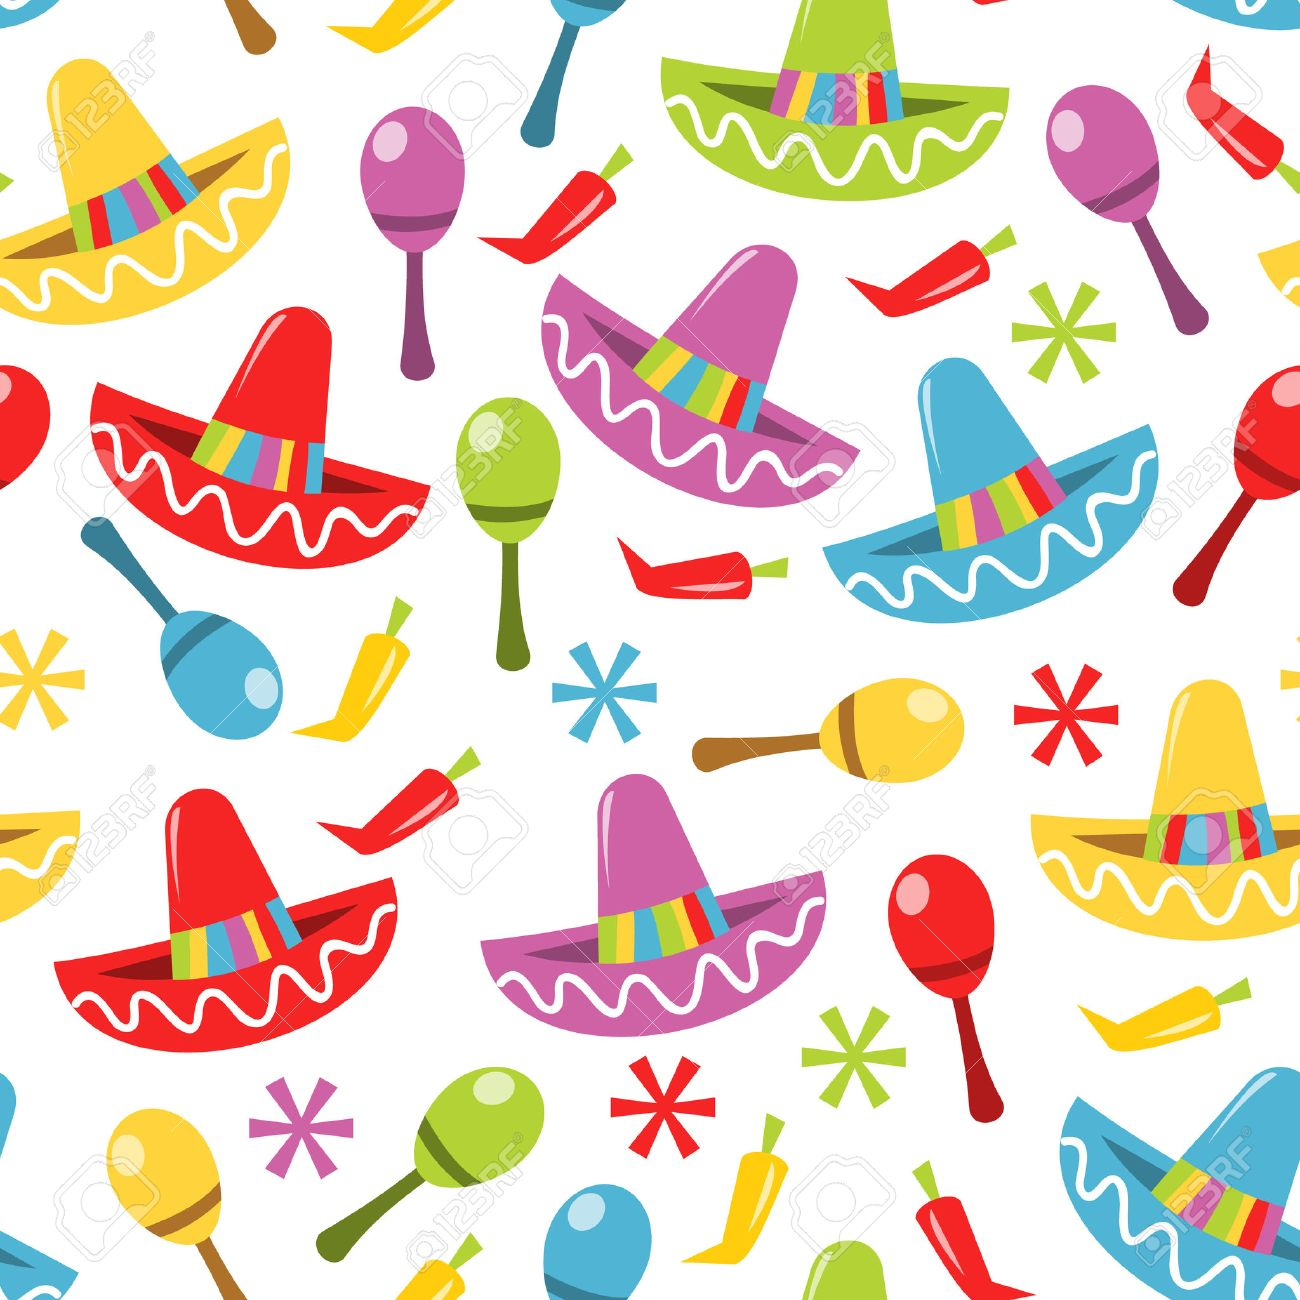 pinterest s fiesta shower bday jo decorations baby decor pin mexican